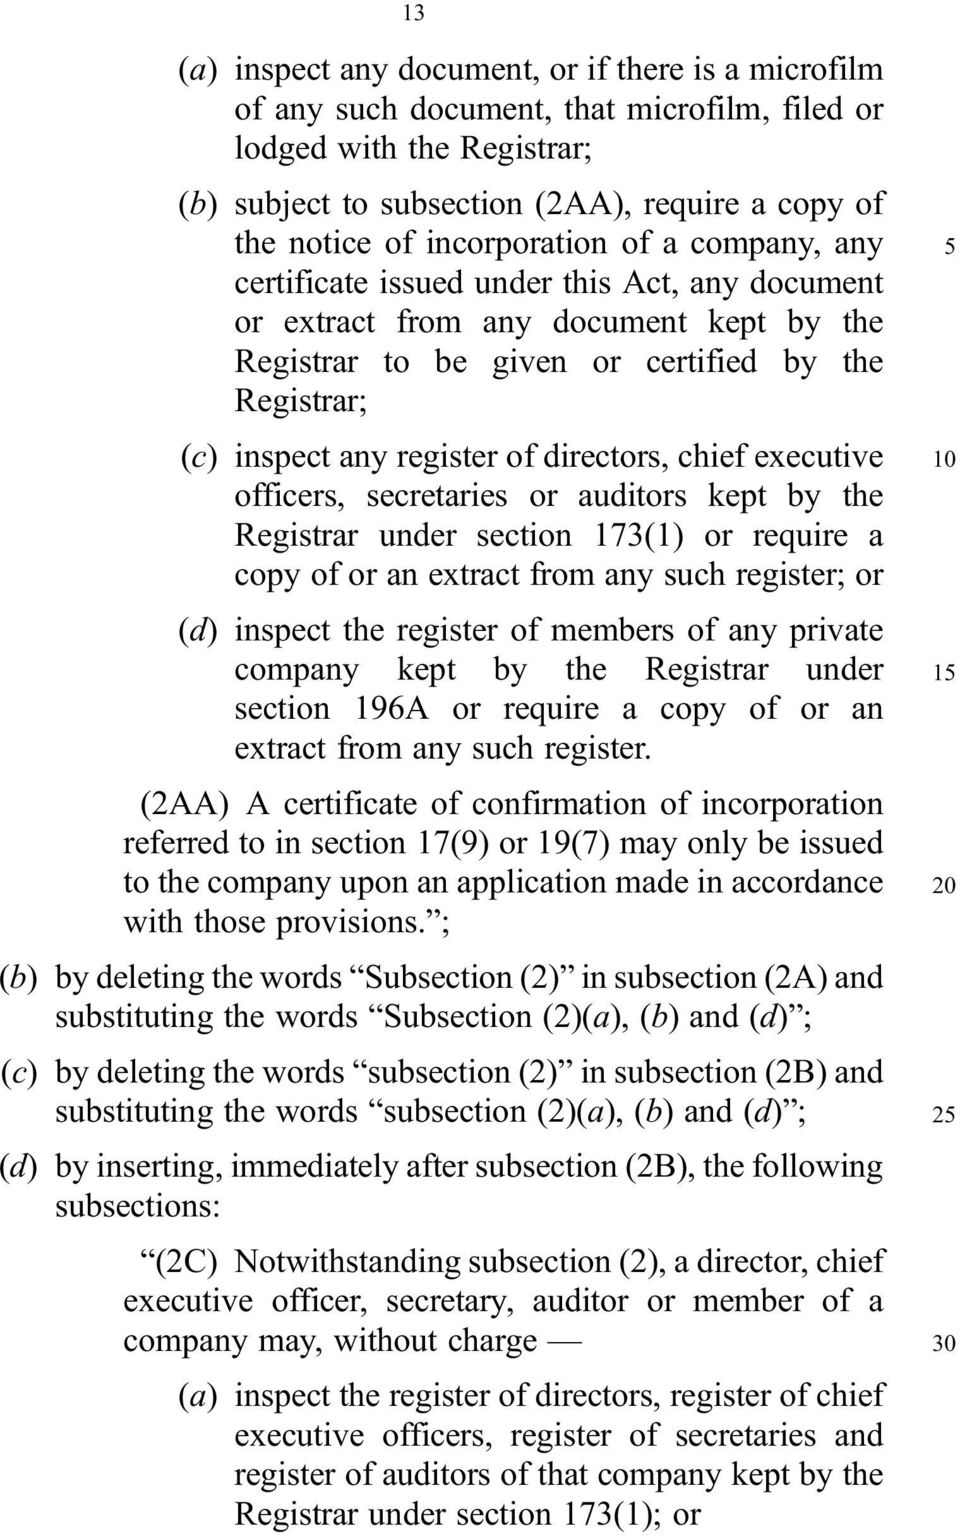 of directors, chief executive officers, secretaries or auditors kept by the Registrar under section 173(1) or require a copy of or an extract from any such register; or (d) inspect the register of